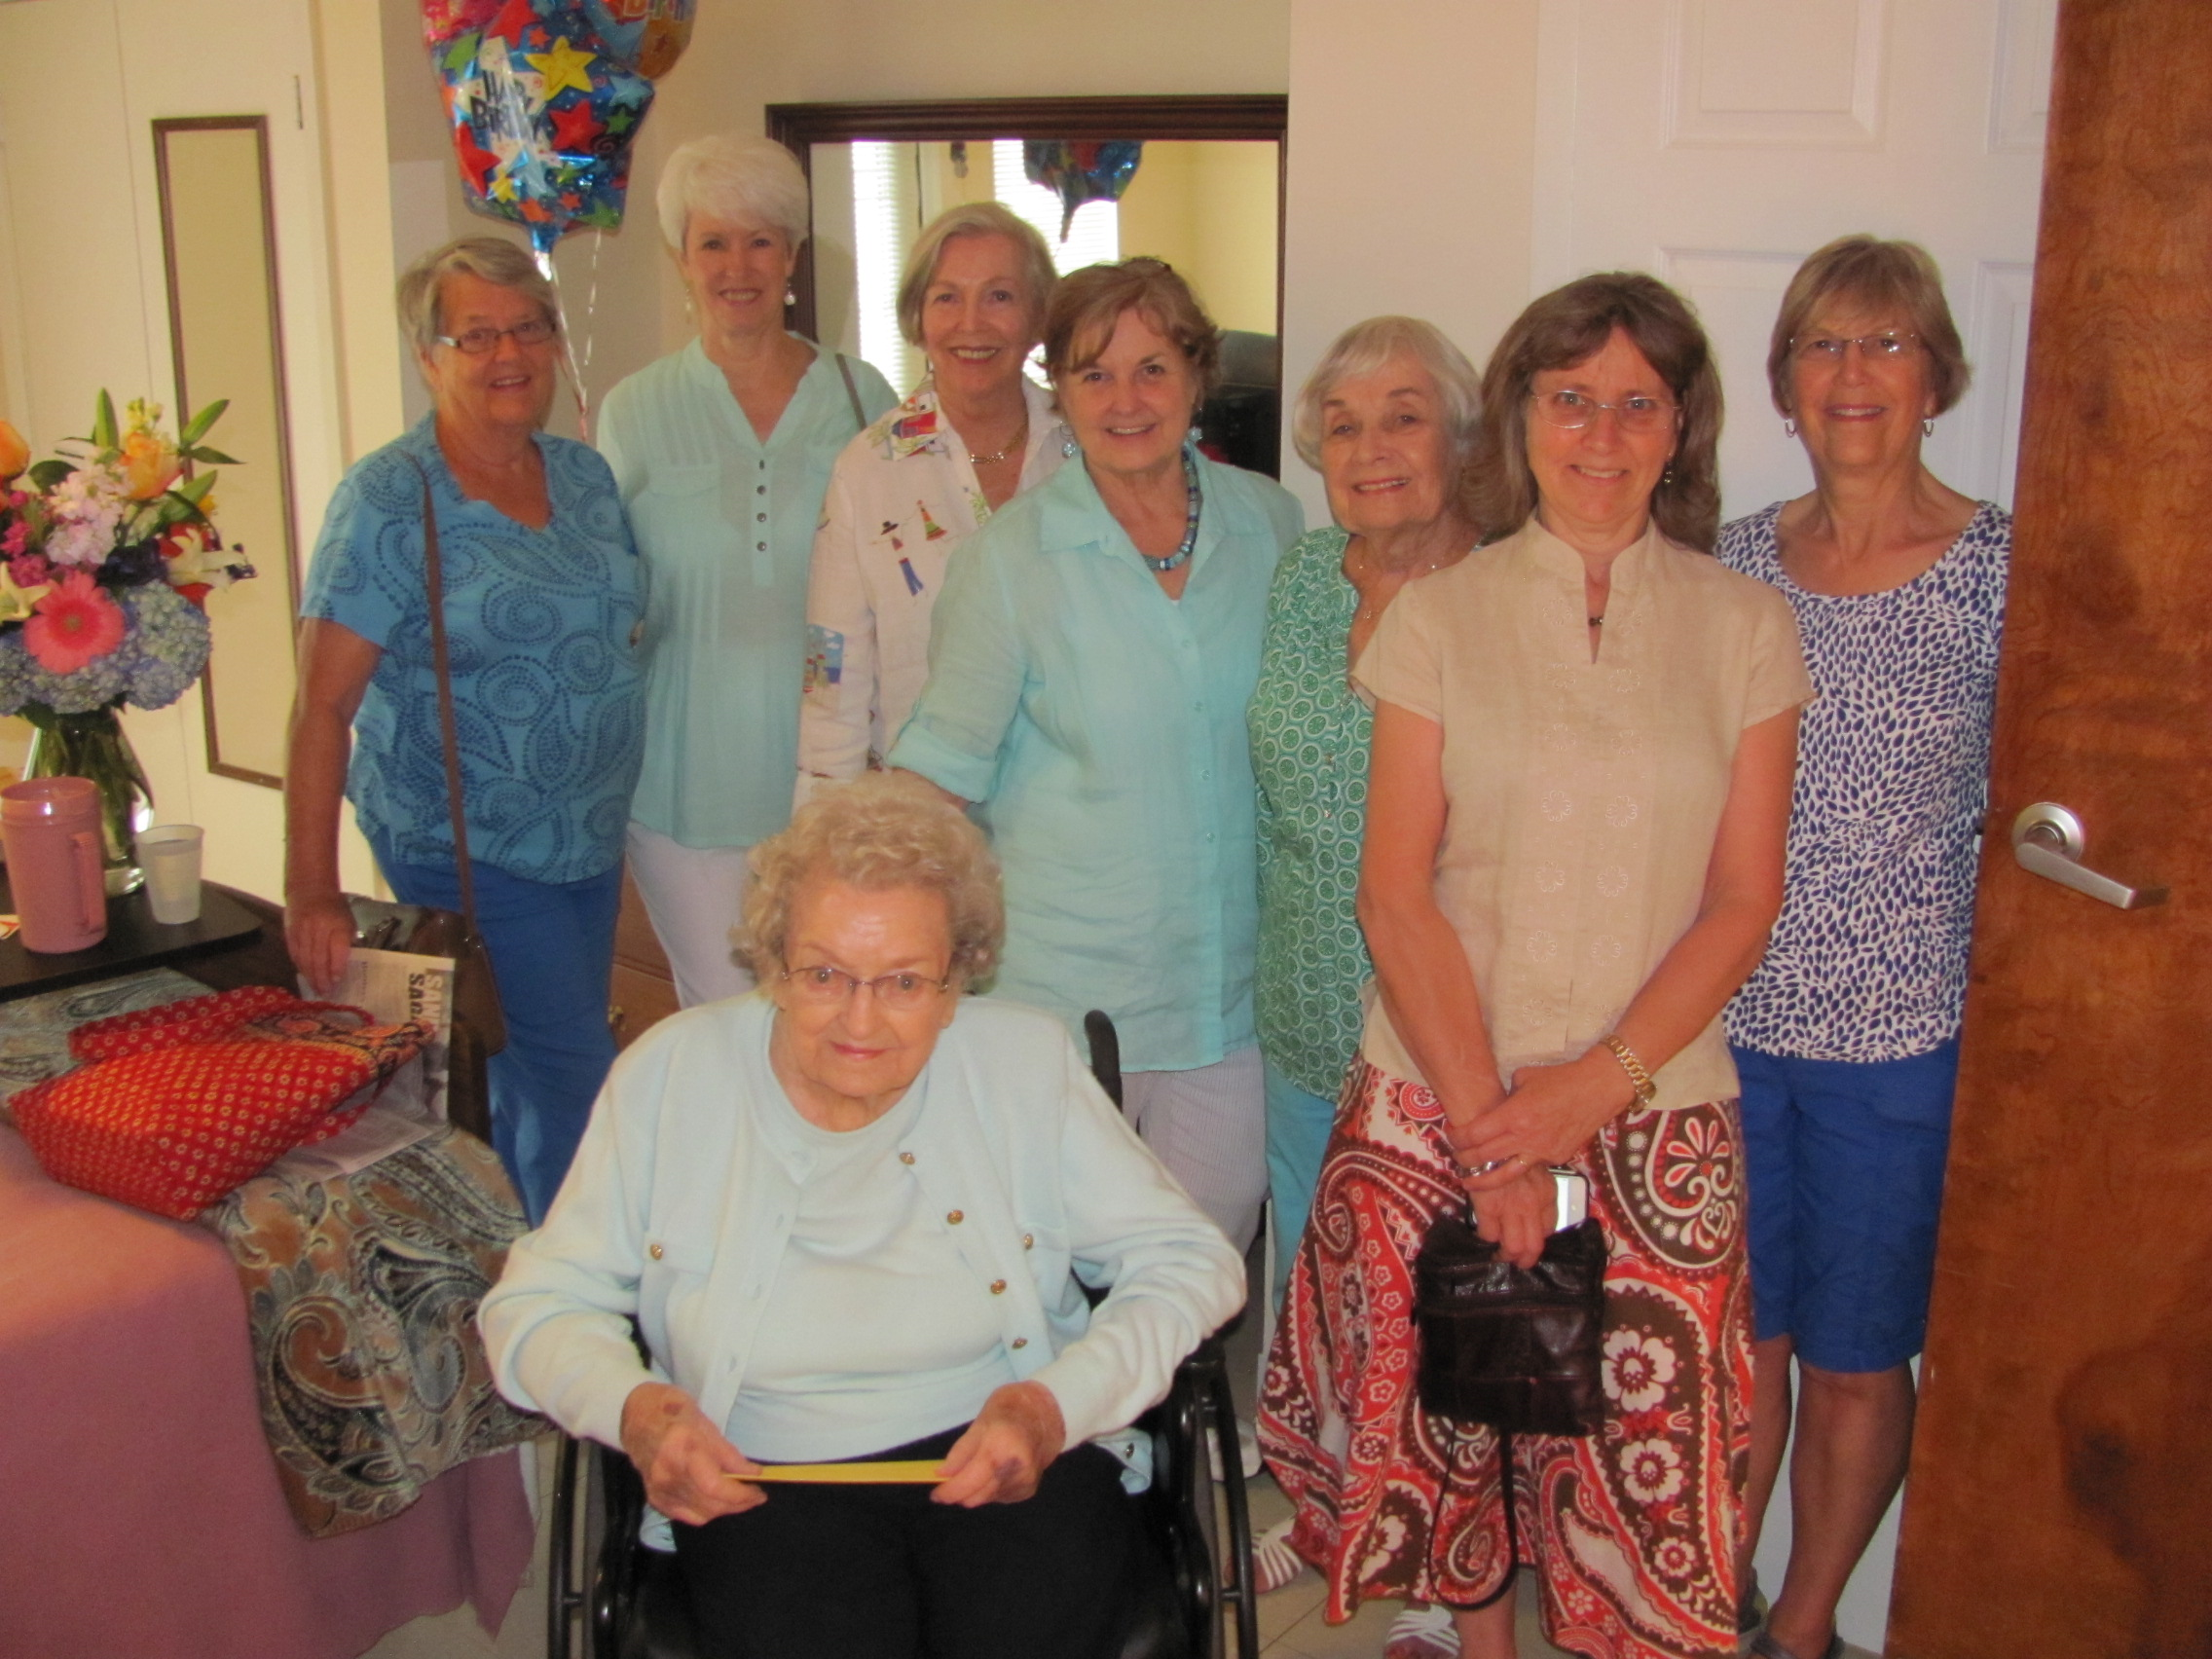 2016 Margret Finney's 100th birthday